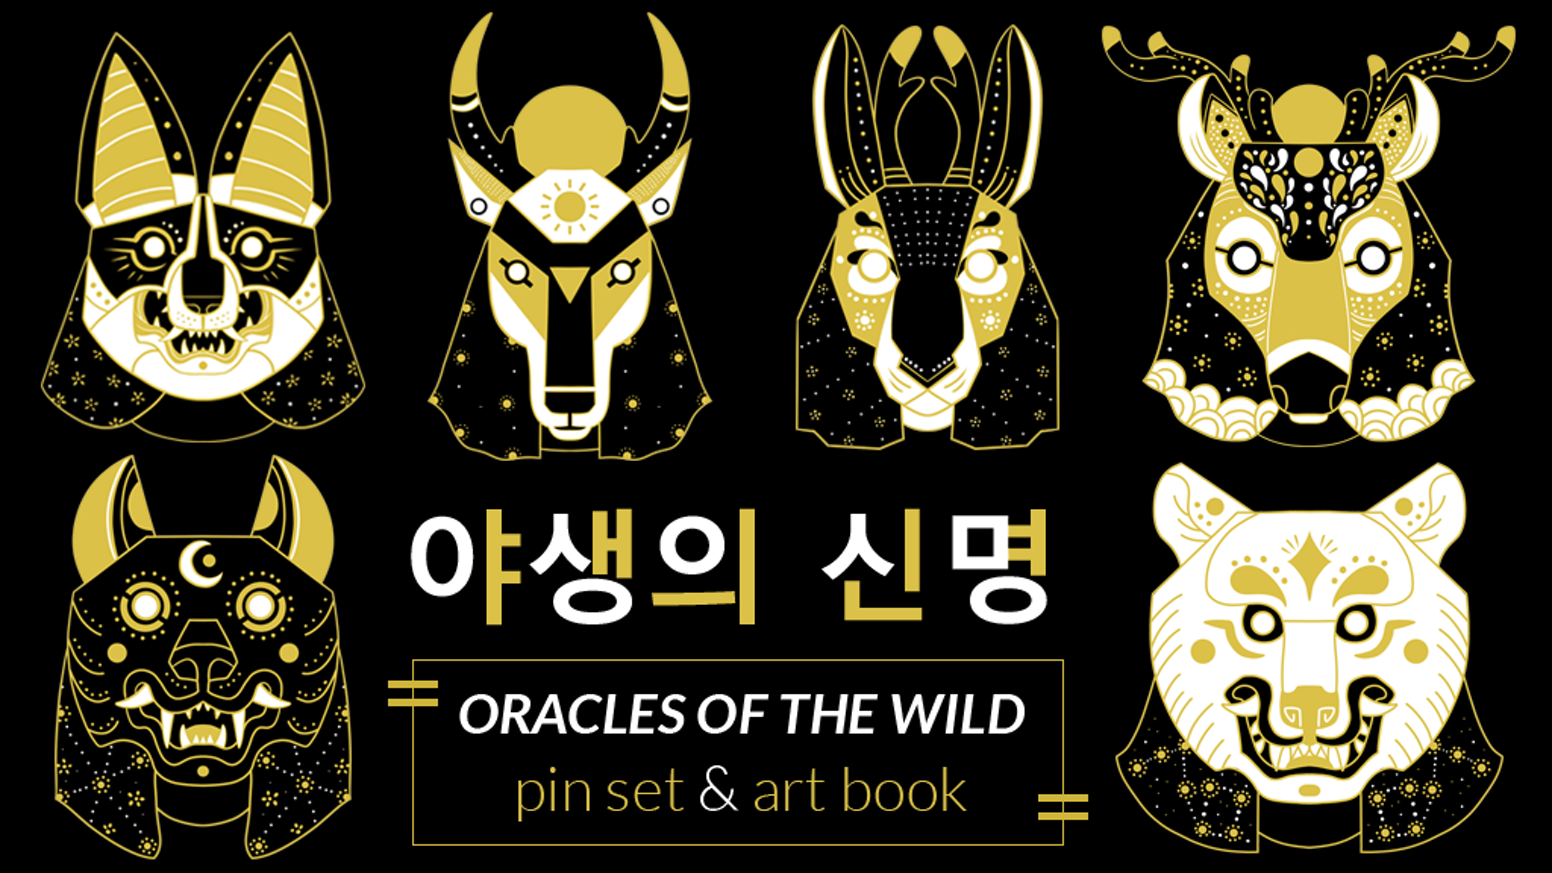 A pin collection and risograph art book showcasing 31 different mask designs.